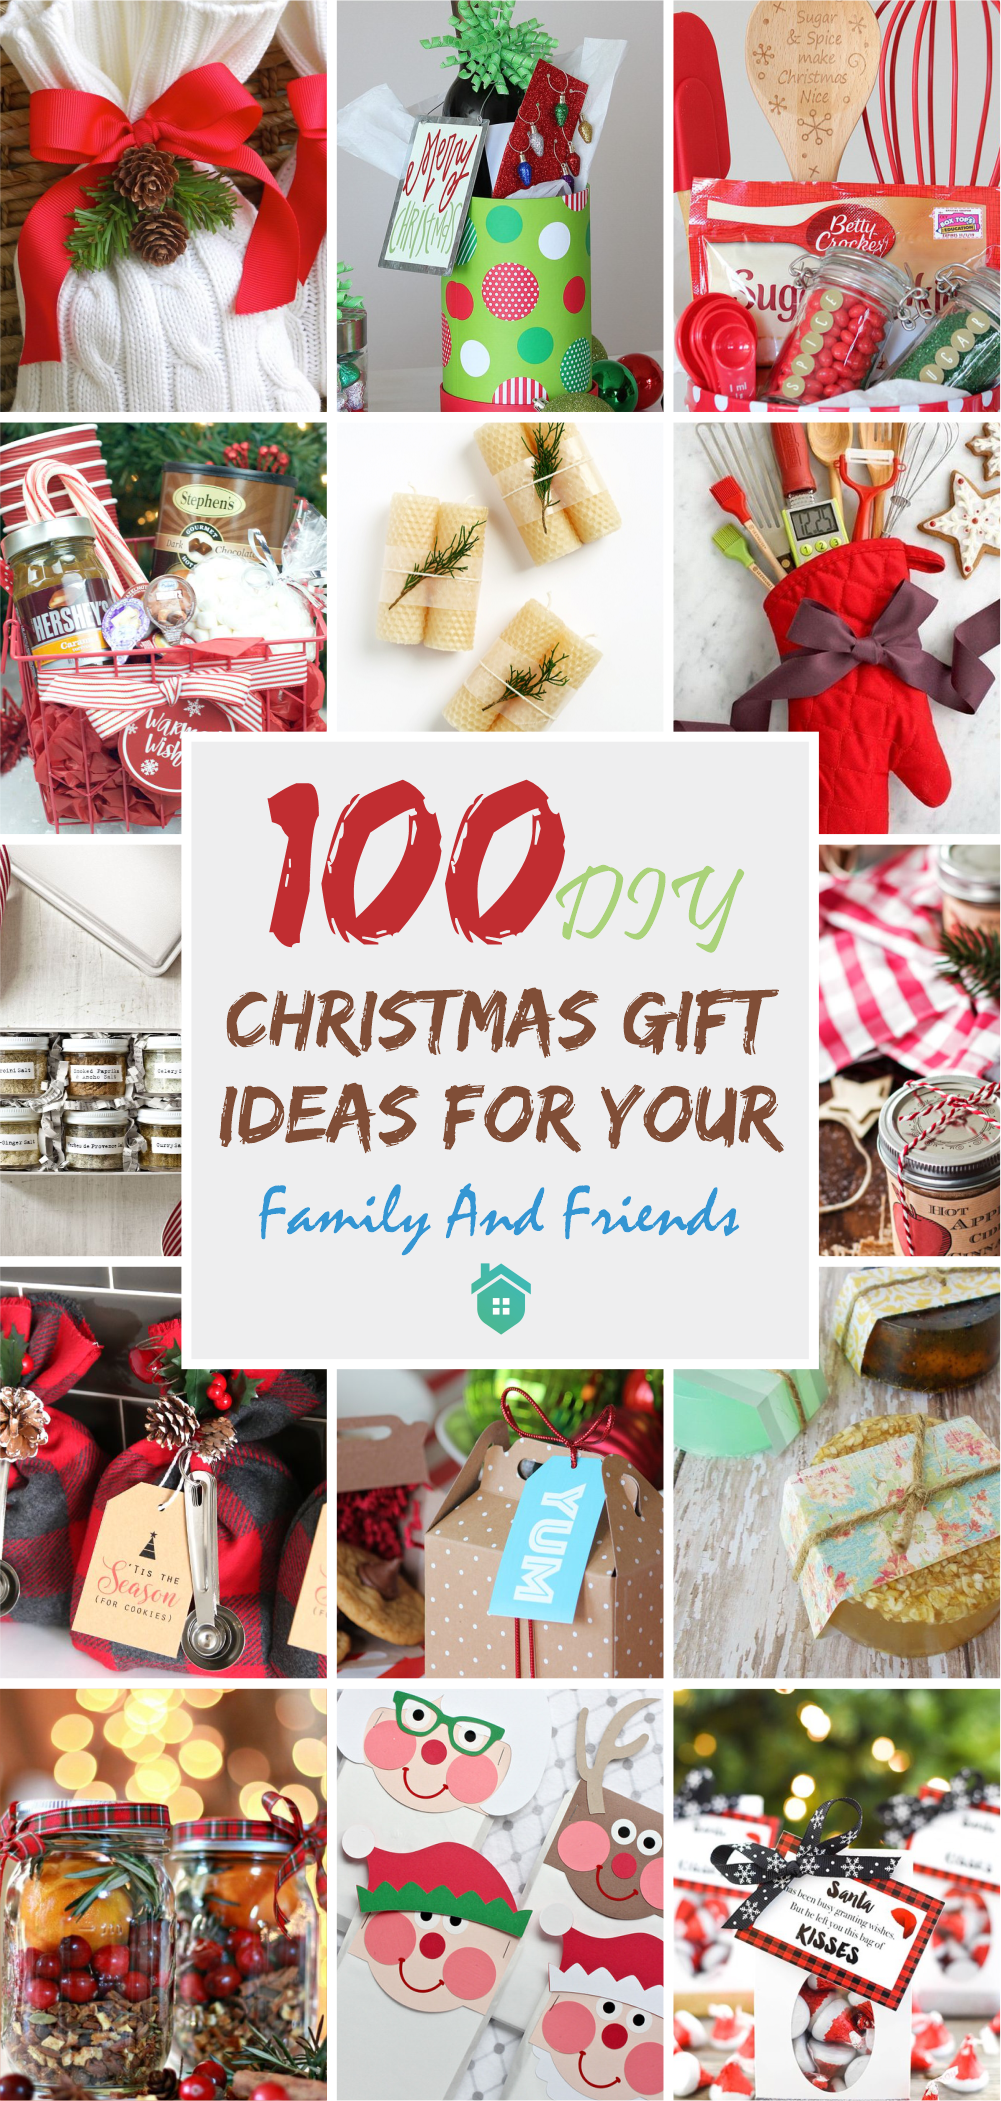 100-diy-christmas-gift-ideas-for-your-family-and-friends5